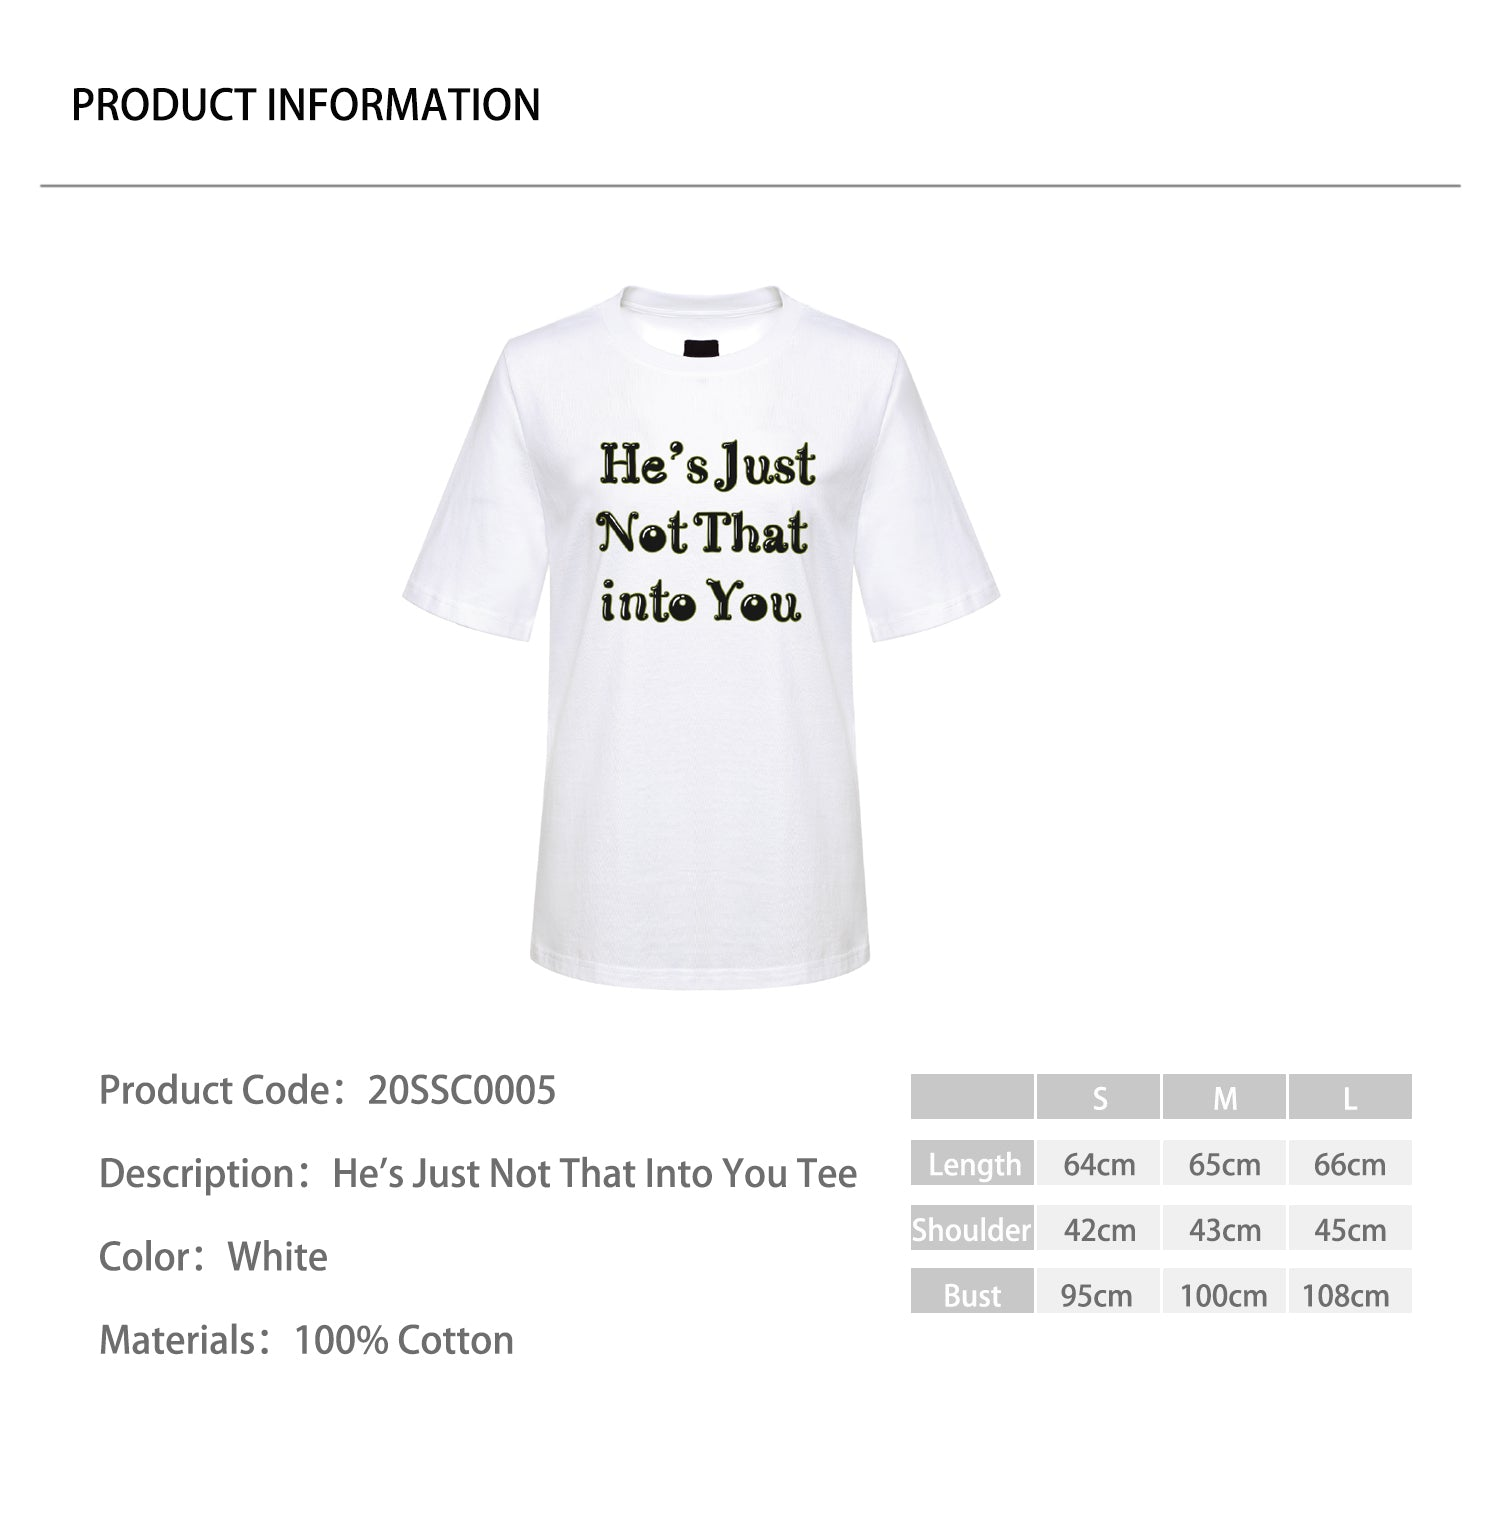 He's Just Not That Into You Tee